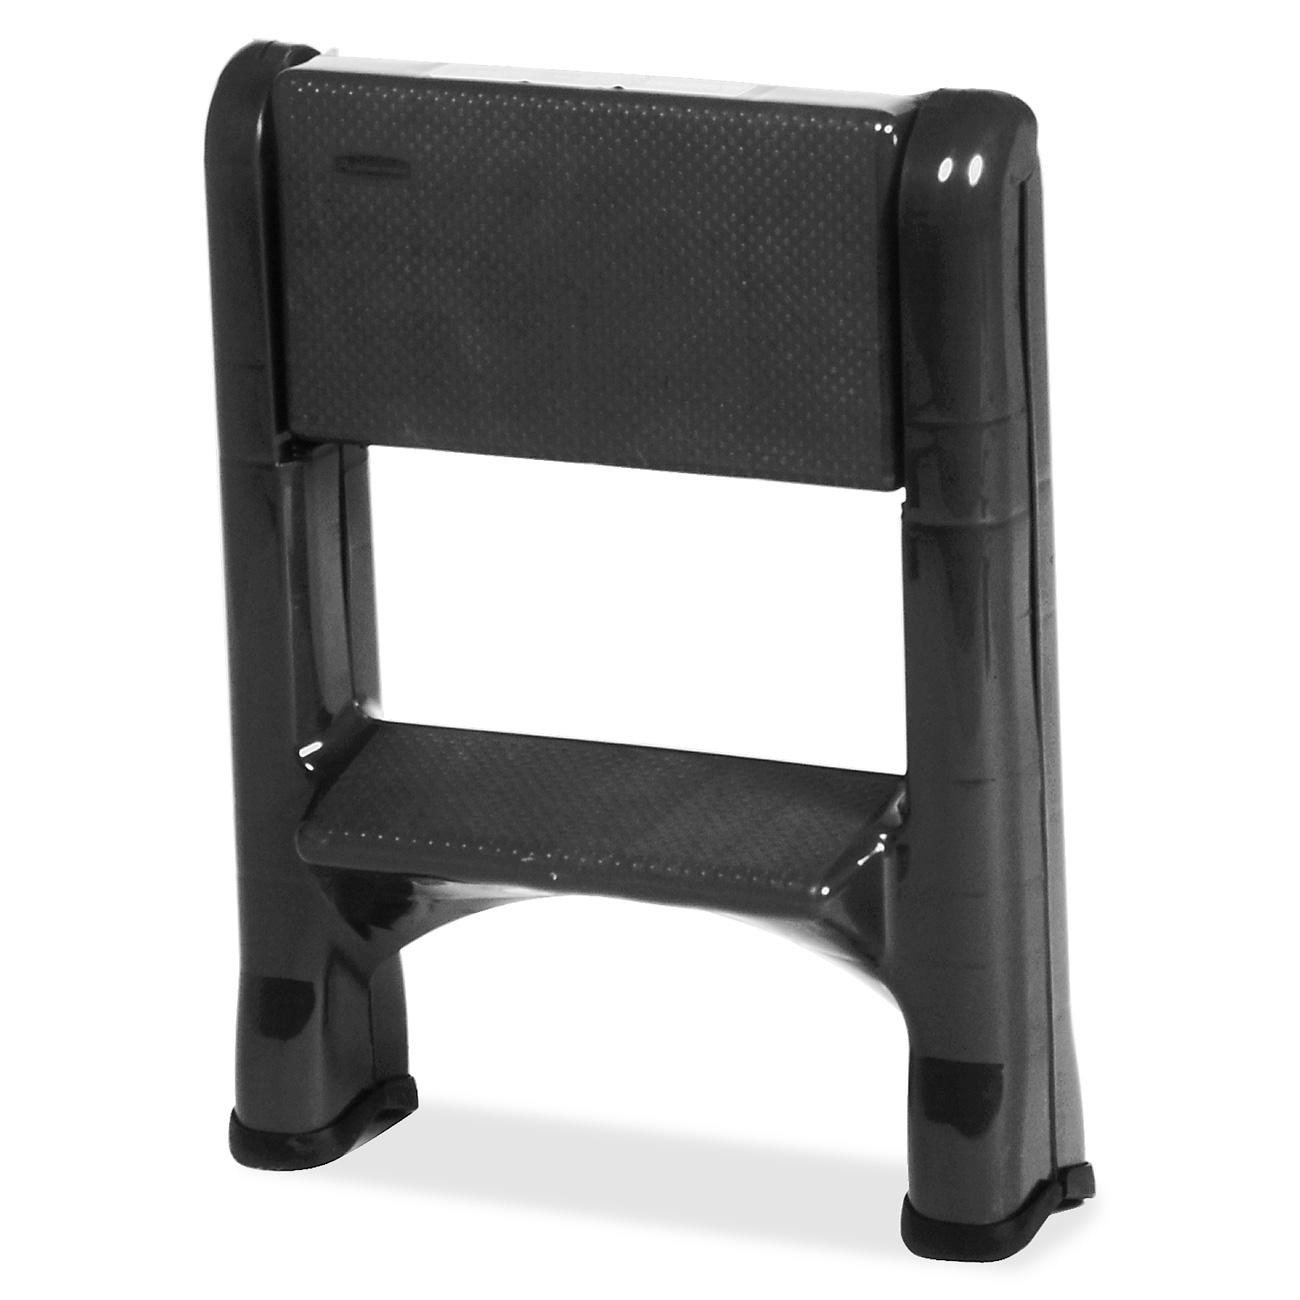 Rubbermaid 2 Tier Step Stool Plastic Lightweight